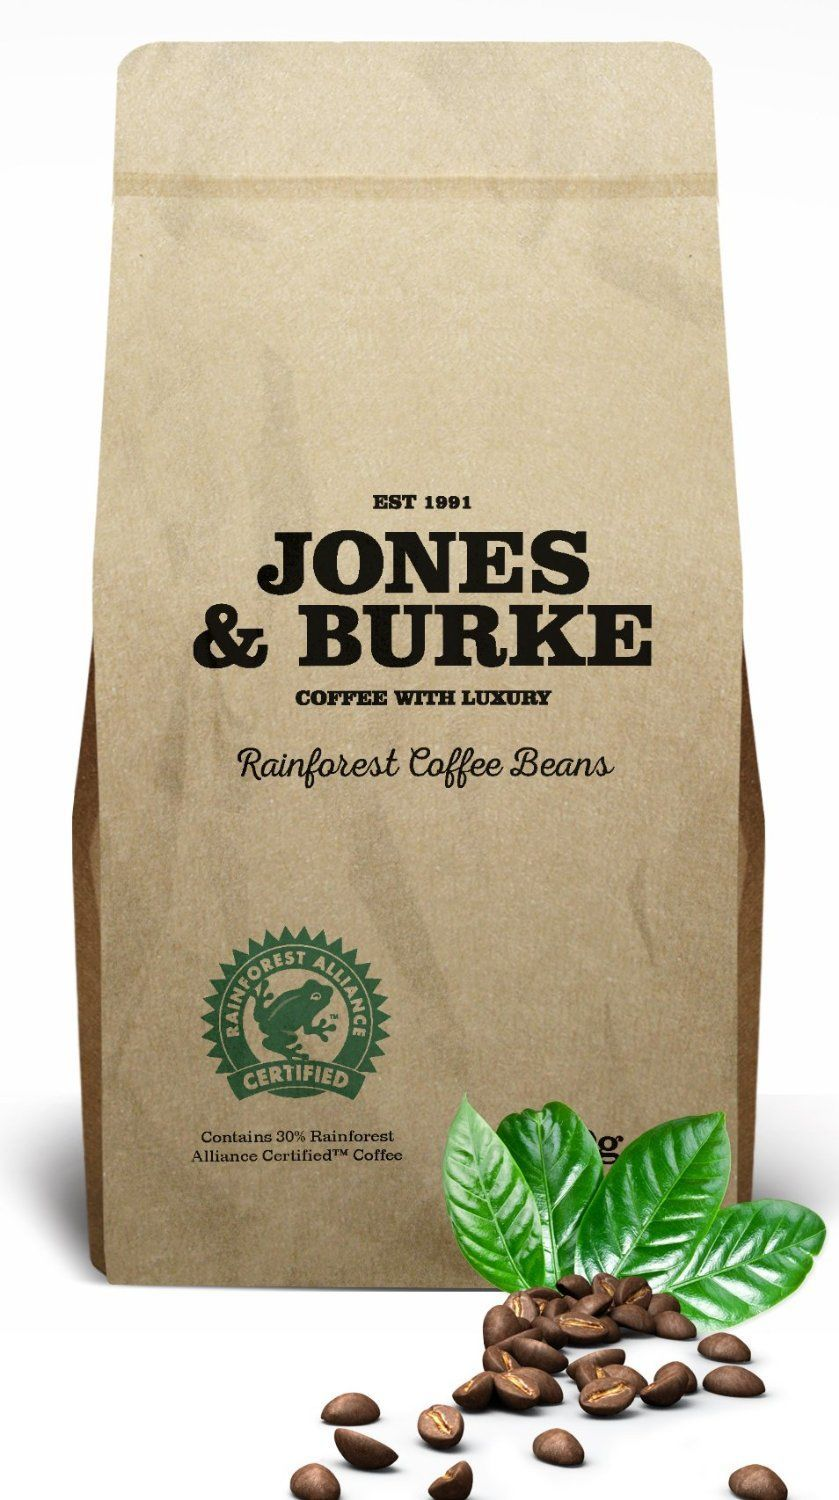 Jones & Burke Coffee Beans